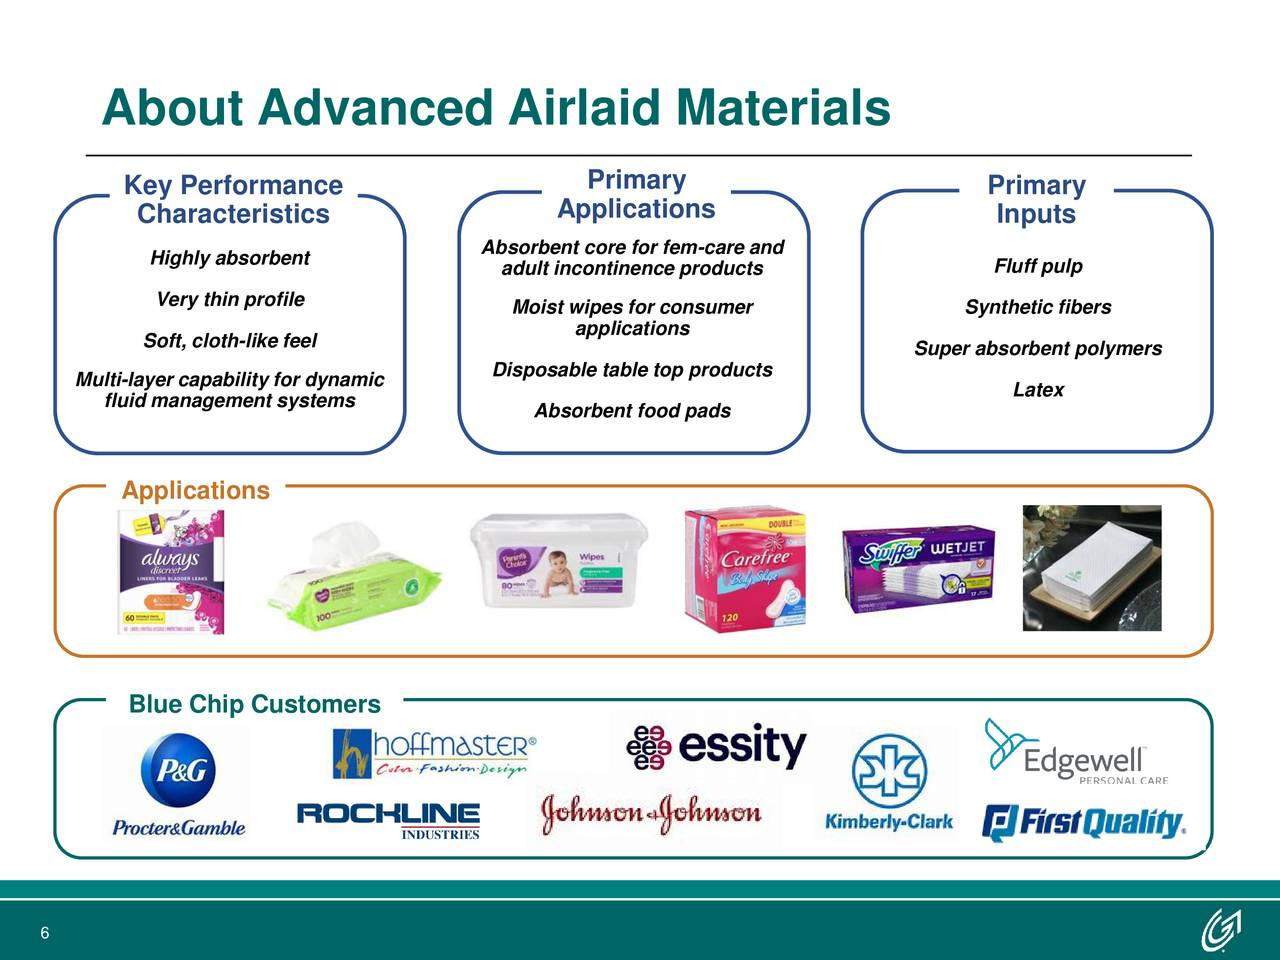 Key Performance Primary Primary Characteristics Applications Inputs Absorbent core for fem-care and Highly absorbent adult incontinence products Fluff pulp Very thin profile Moist wipes for consumer Synthetic fibers Soft, cloth-like feel applications Disposable table top products Super absorbent polymers Multi-layer capability for dynamic Latex fluid management systems Absorbent food pads Applications Blue Chip Customers 6